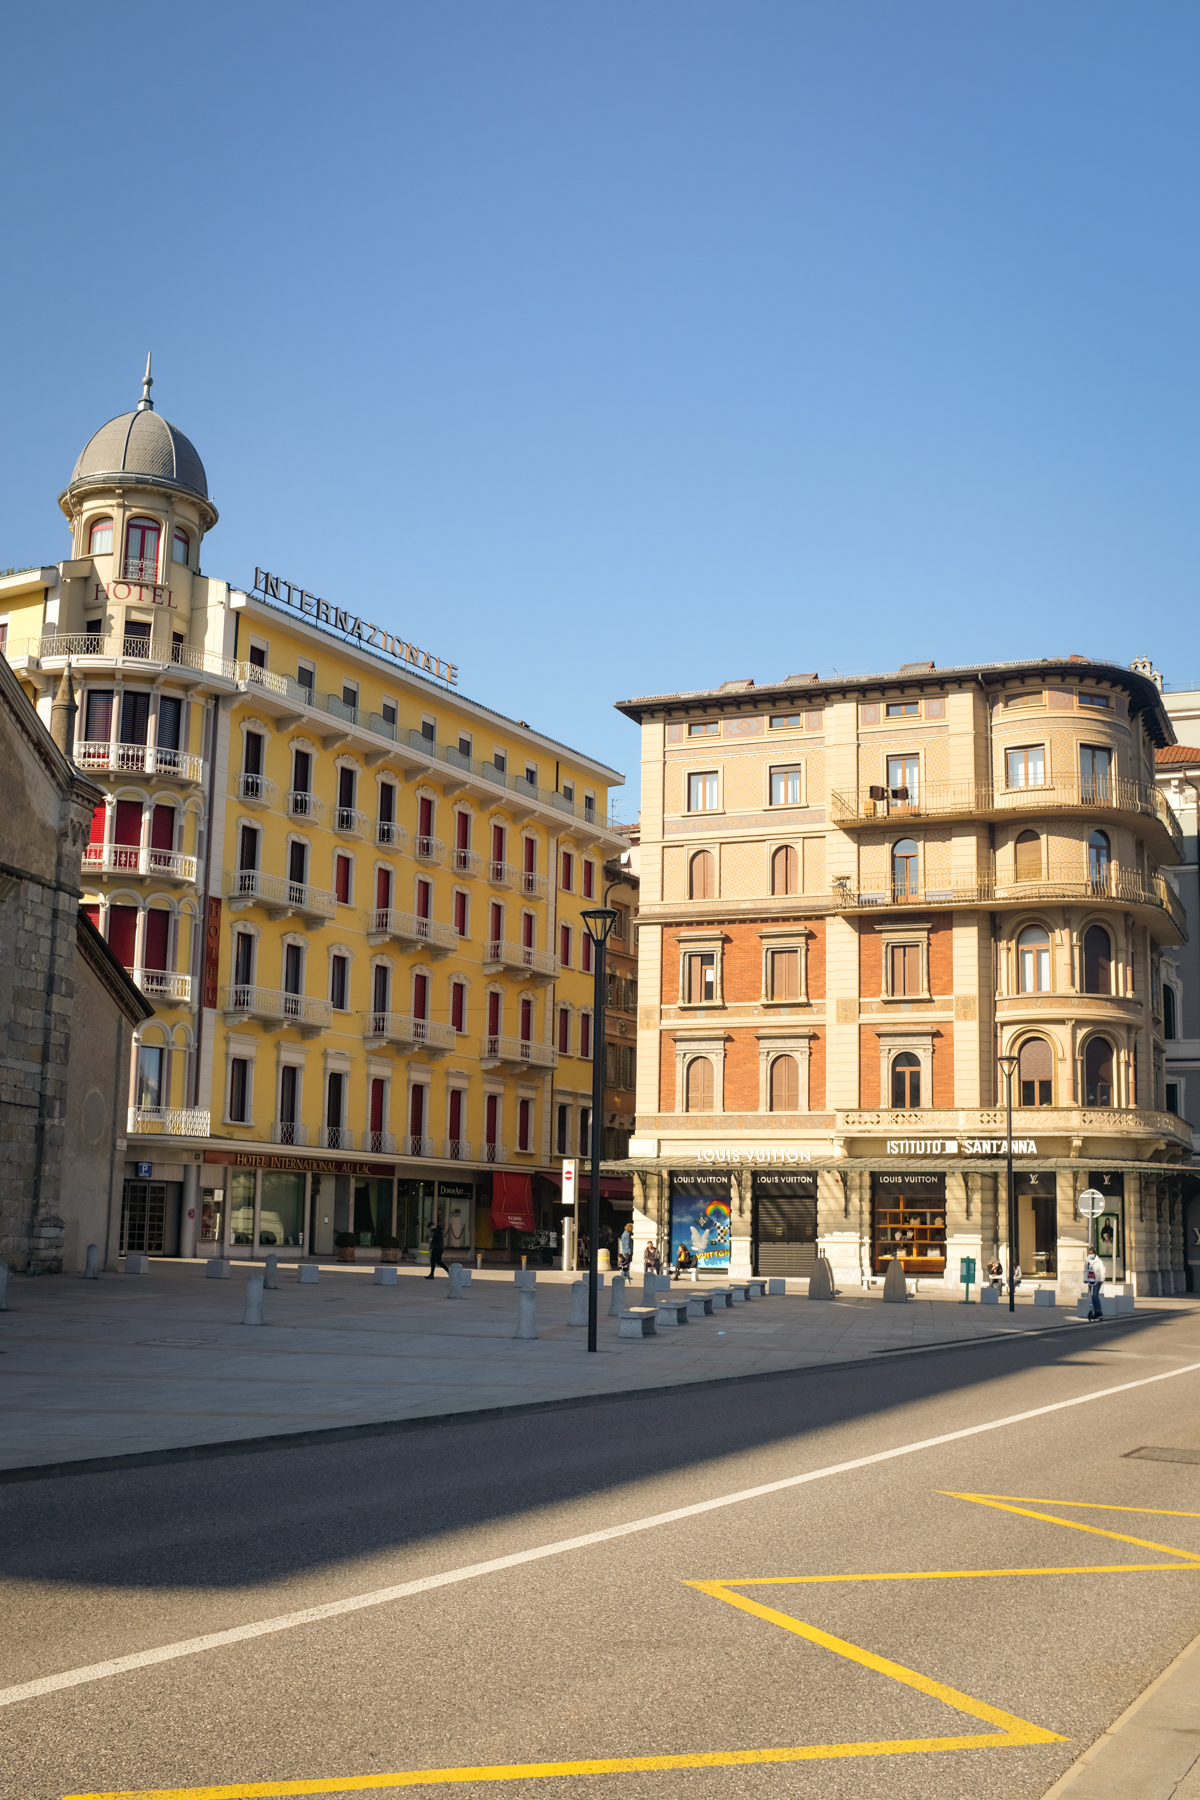 Neoclassical buildings and an empty street